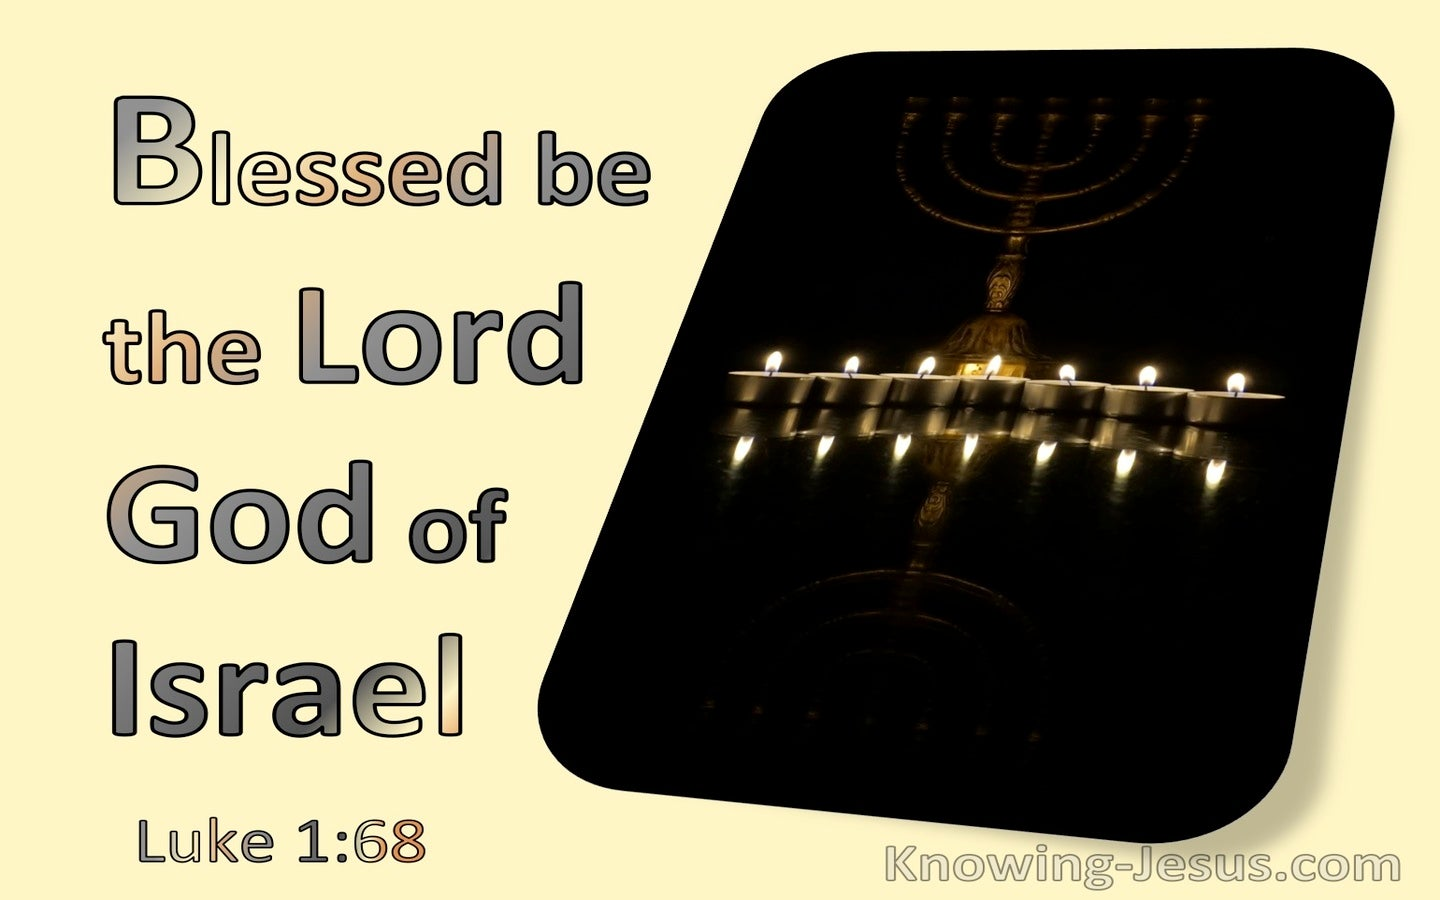 Luke 1:68 Blessed be the Lord God of Israel (yellow)